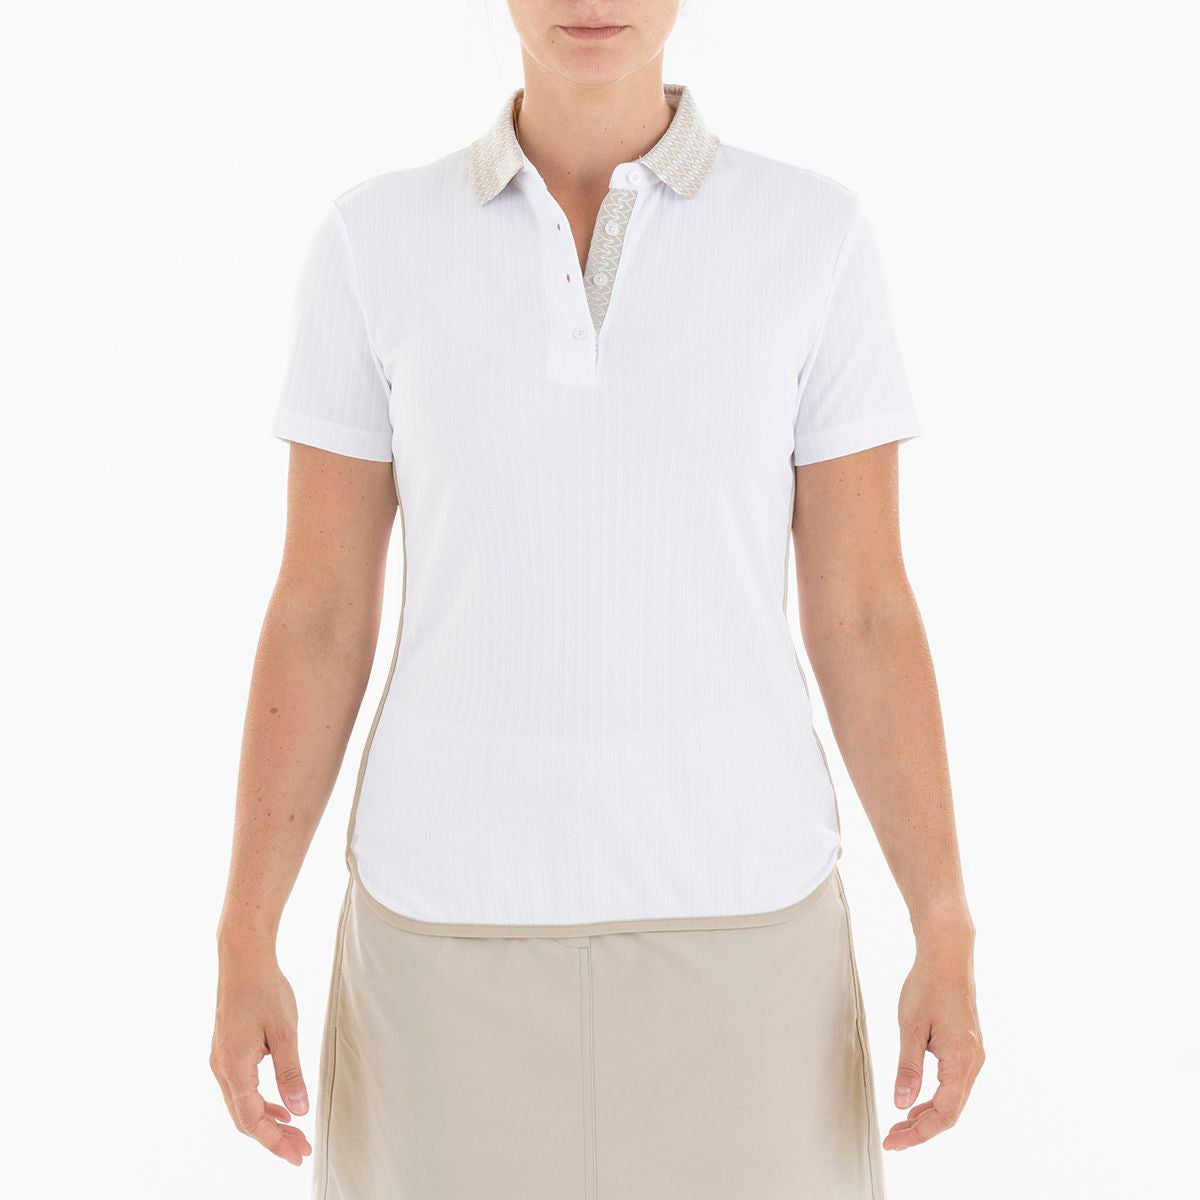 BIRDY POLO GOLF 100 WHITE XXL BREEZE